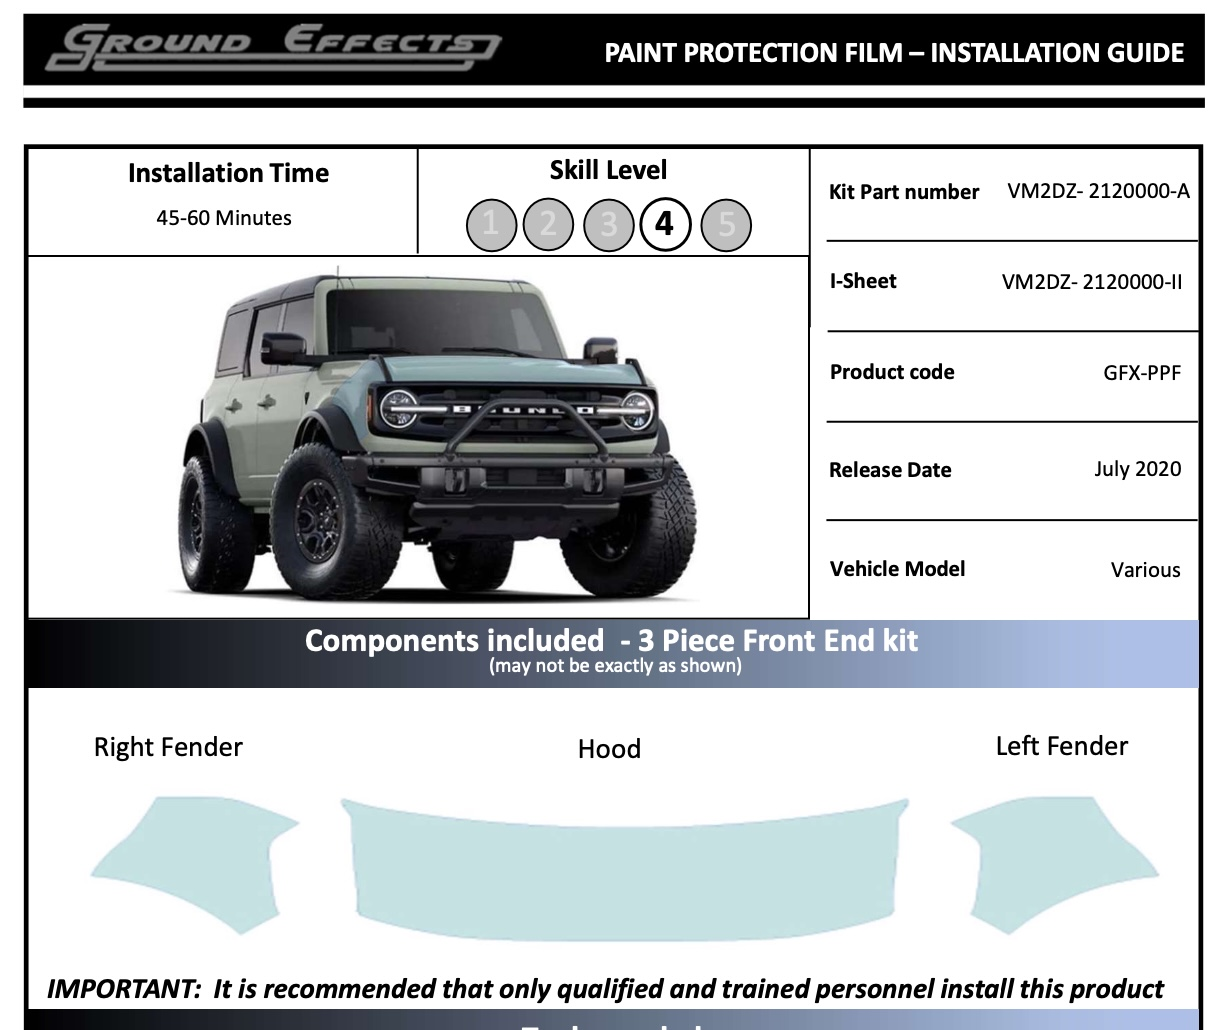 2021 Ford Bronco PPF Paint Protection Film Guide Coverage.jpg